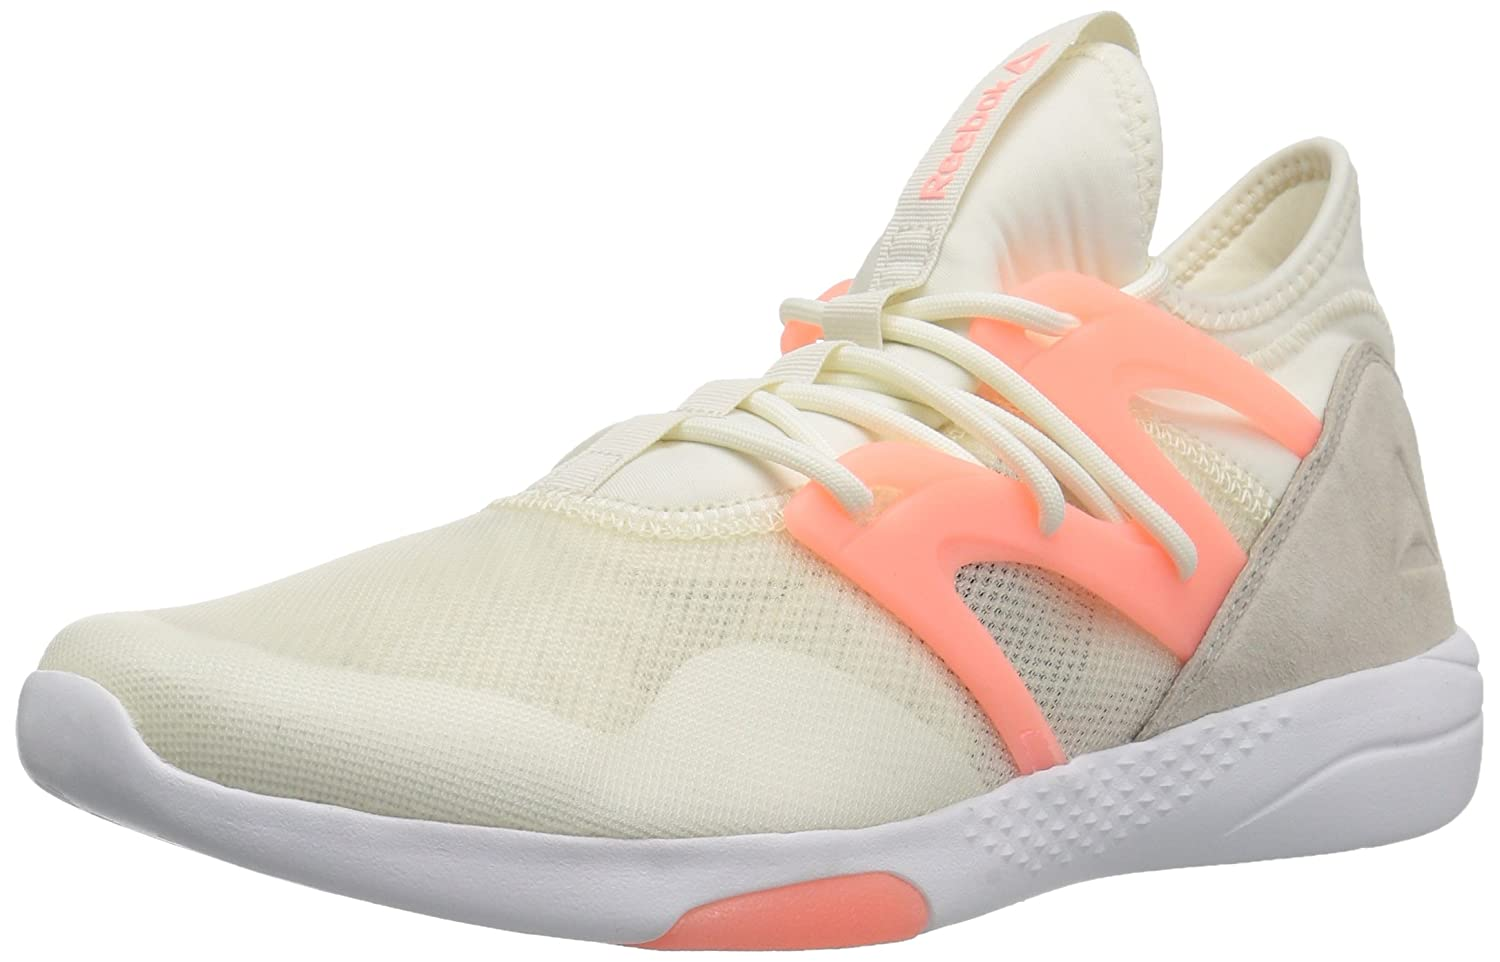 Reebok Women's Hayasu Training Shoe B01NAPX9PL 7.5 B(M) US|Chalk/Sand Stone/Sour Melon/White